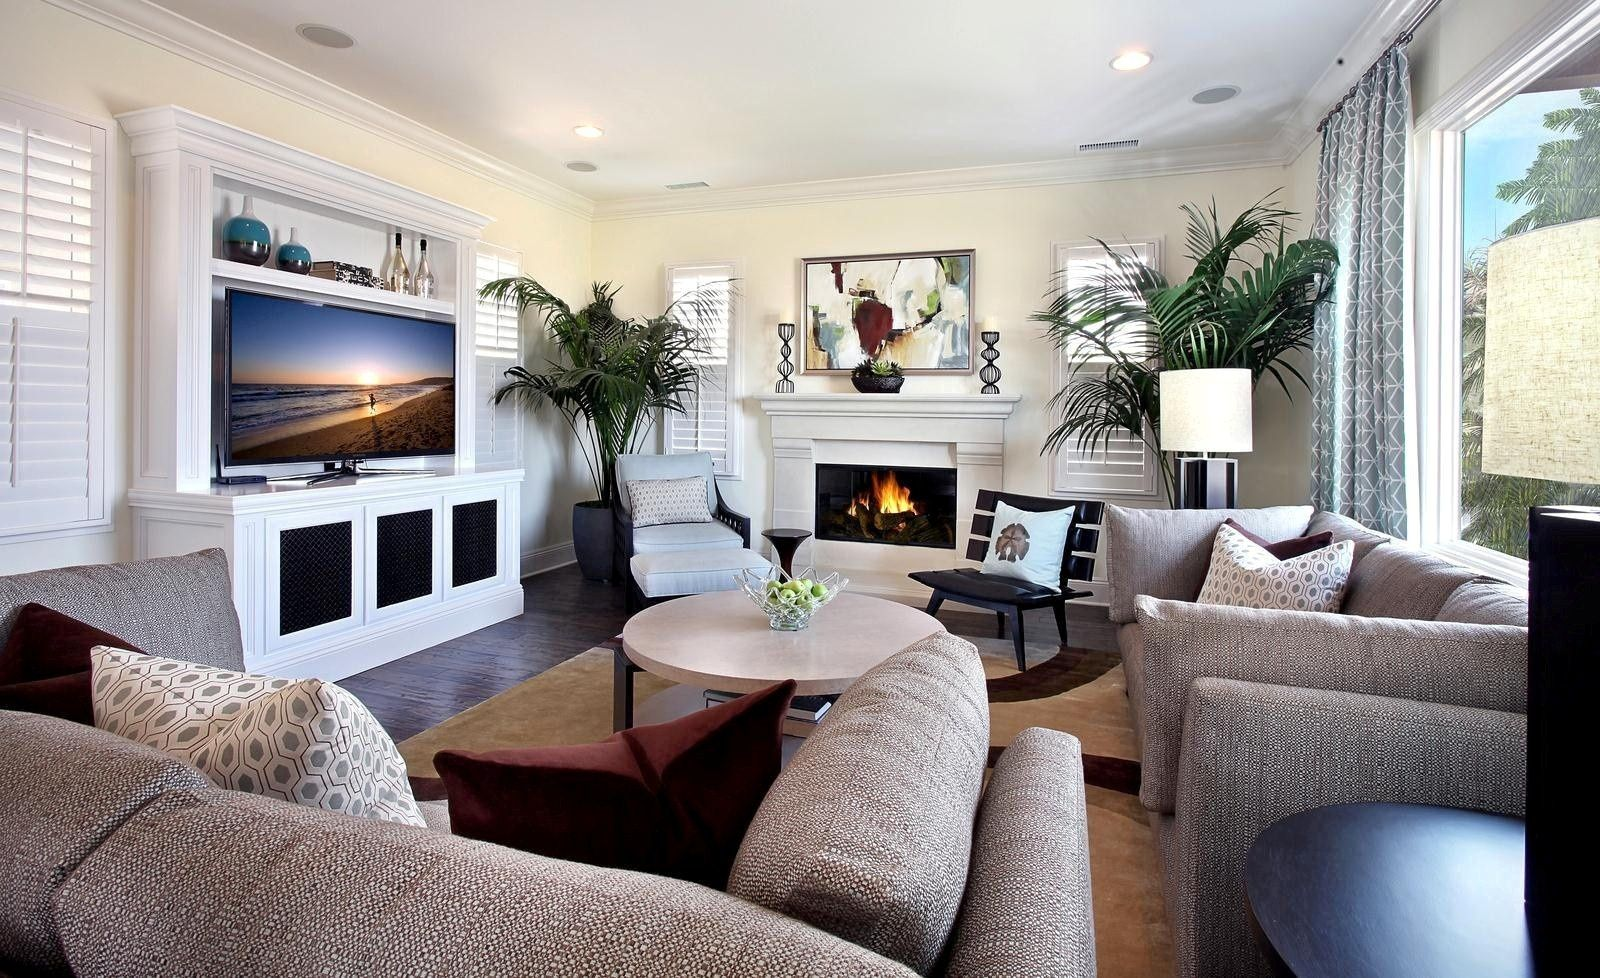 Image Result For Design Living Room For Children Tv And Fireplace  Wohnzimmer Layouts, Einfache Wohnzimmer